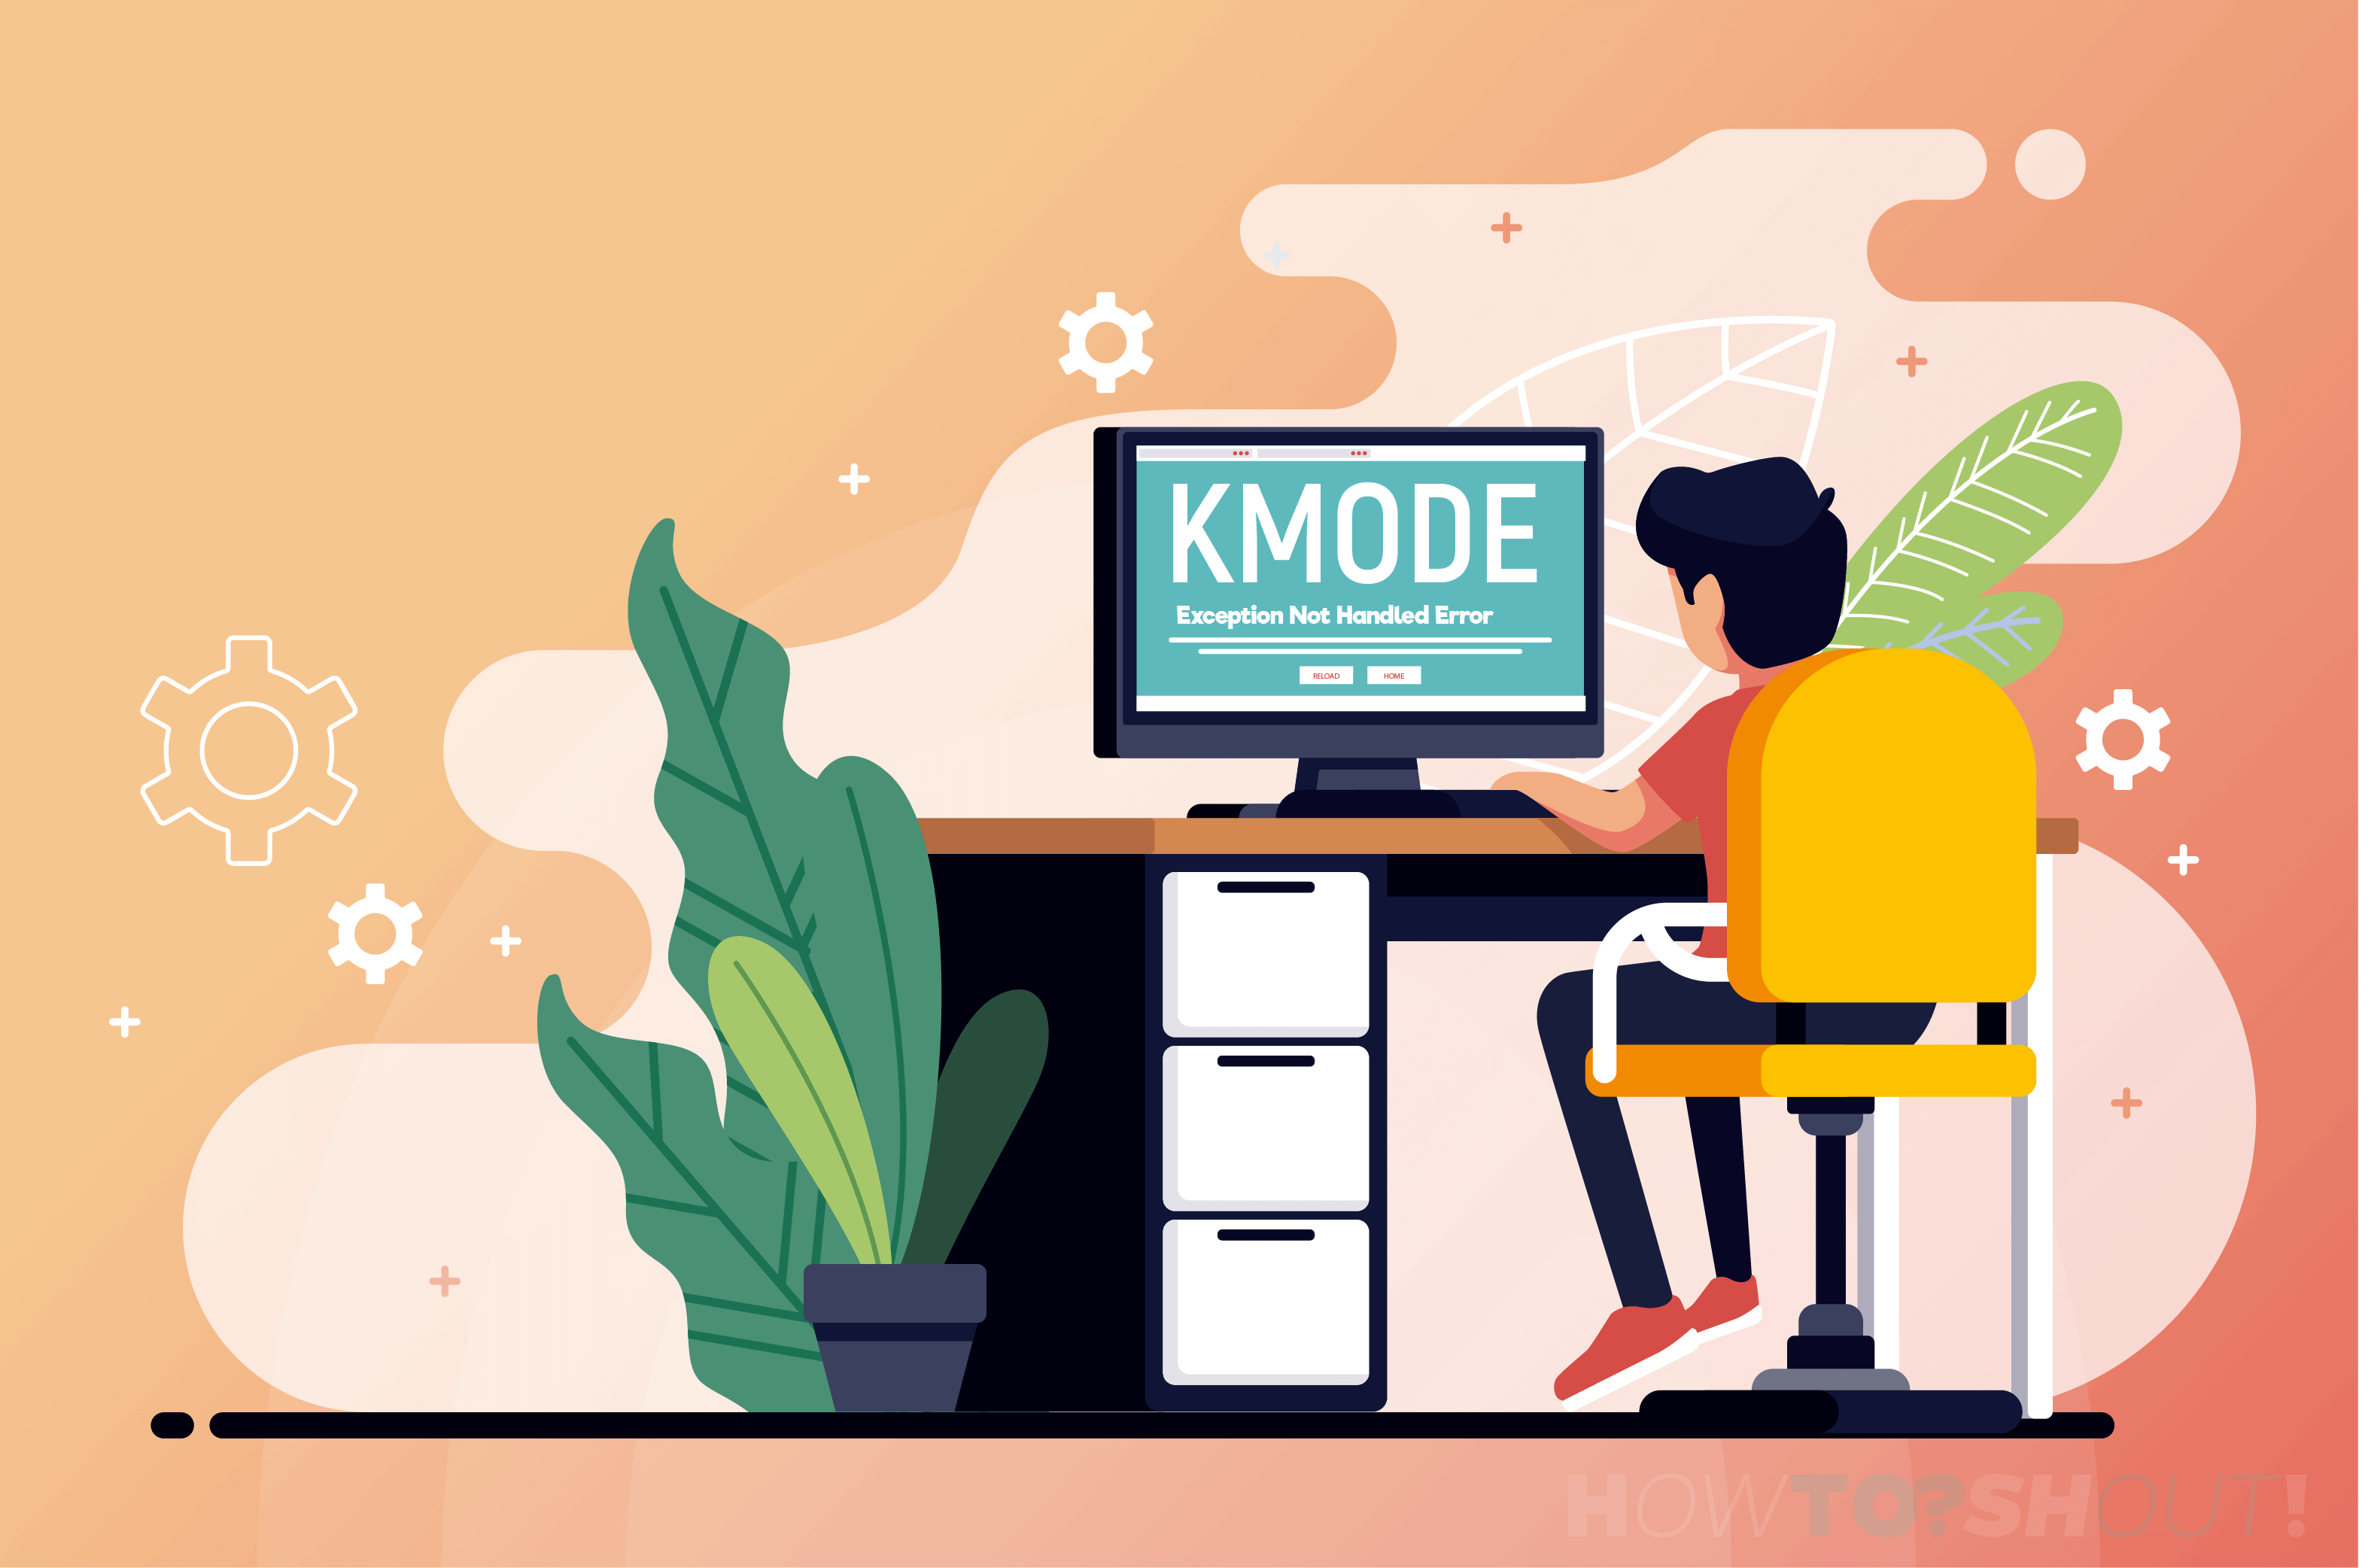 KMode Exception Not Handled Error